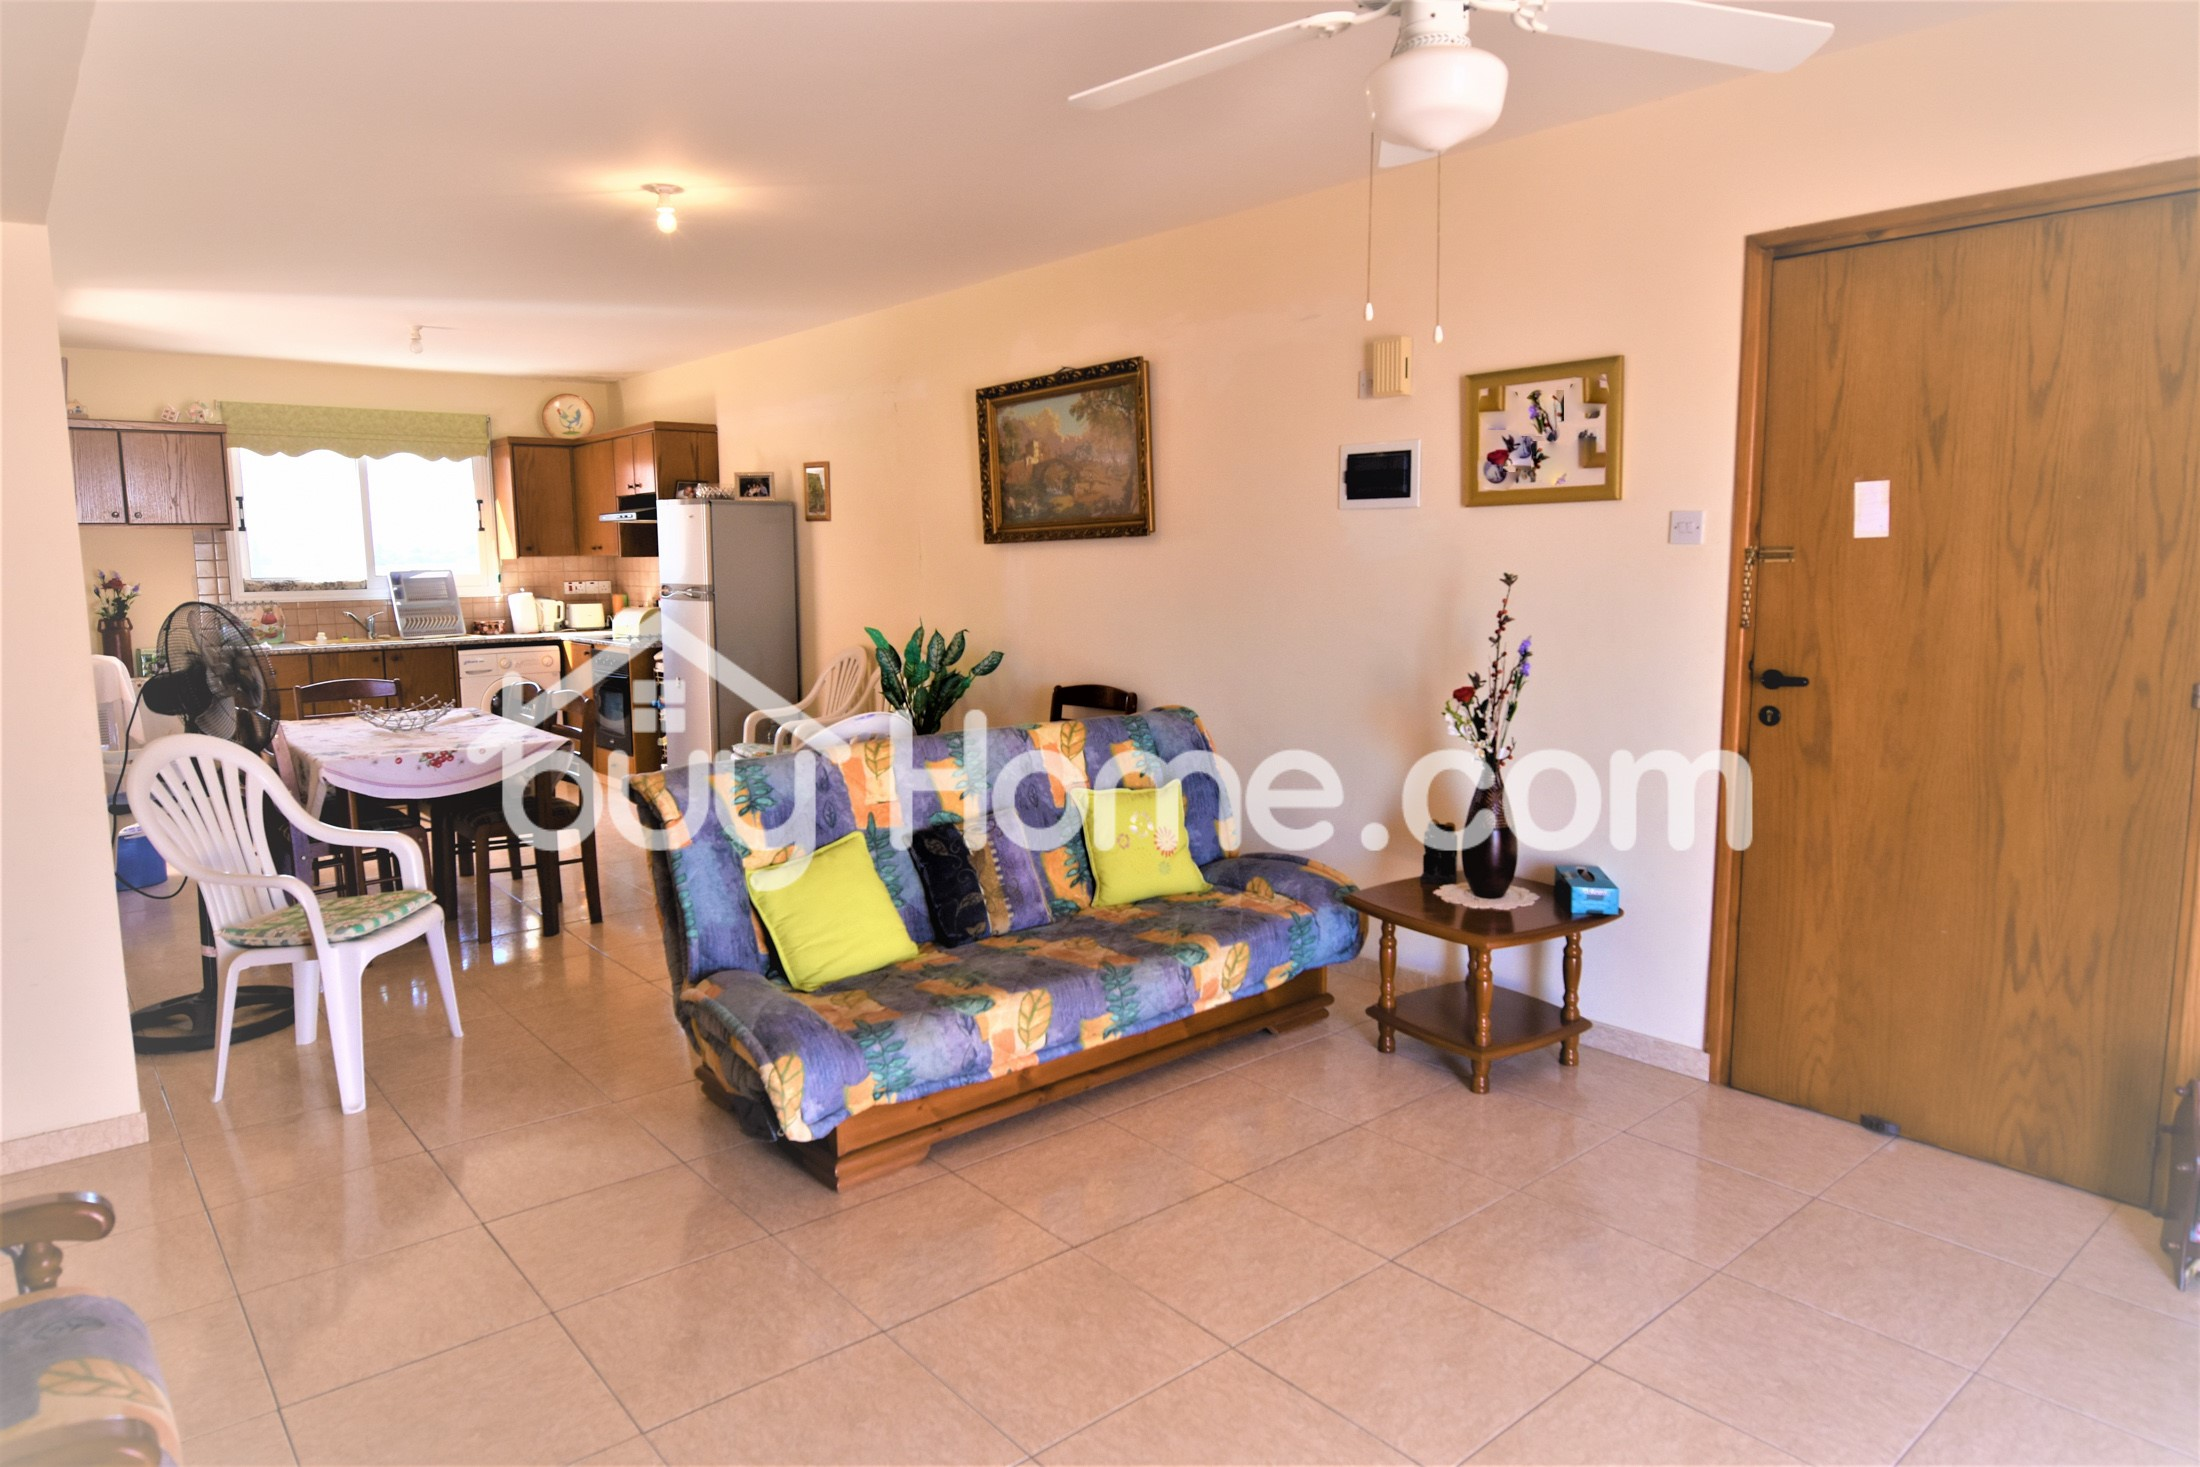 3 Bedroom Penthouse Apartment | BuyHome